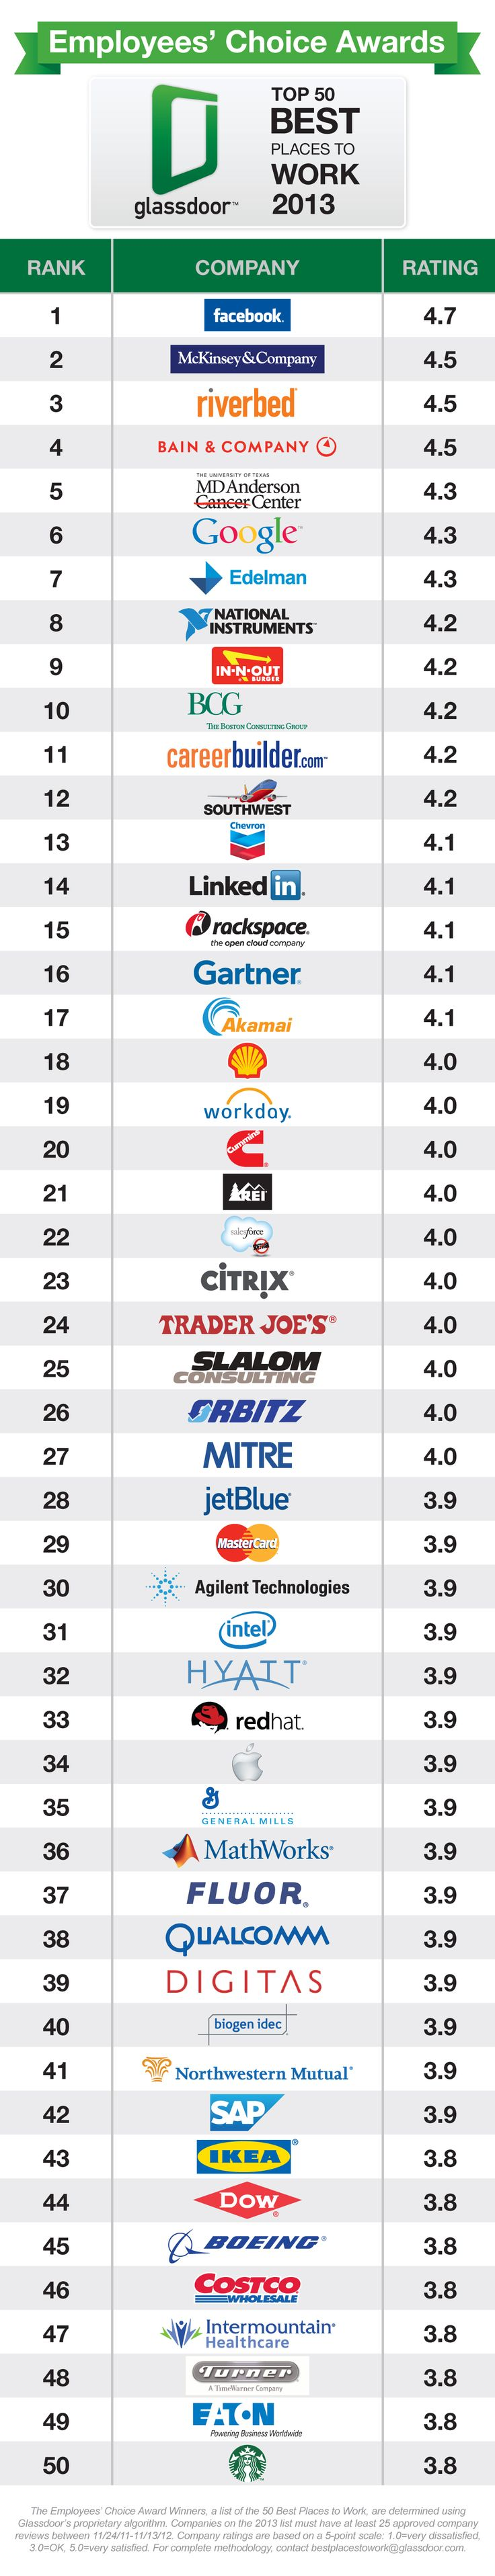 Top 50 best places to work 2013. http://www.forbes.com/sites/jacquelynsmith/2012/12/12/the-best-companies-to-work-for-in-2013/